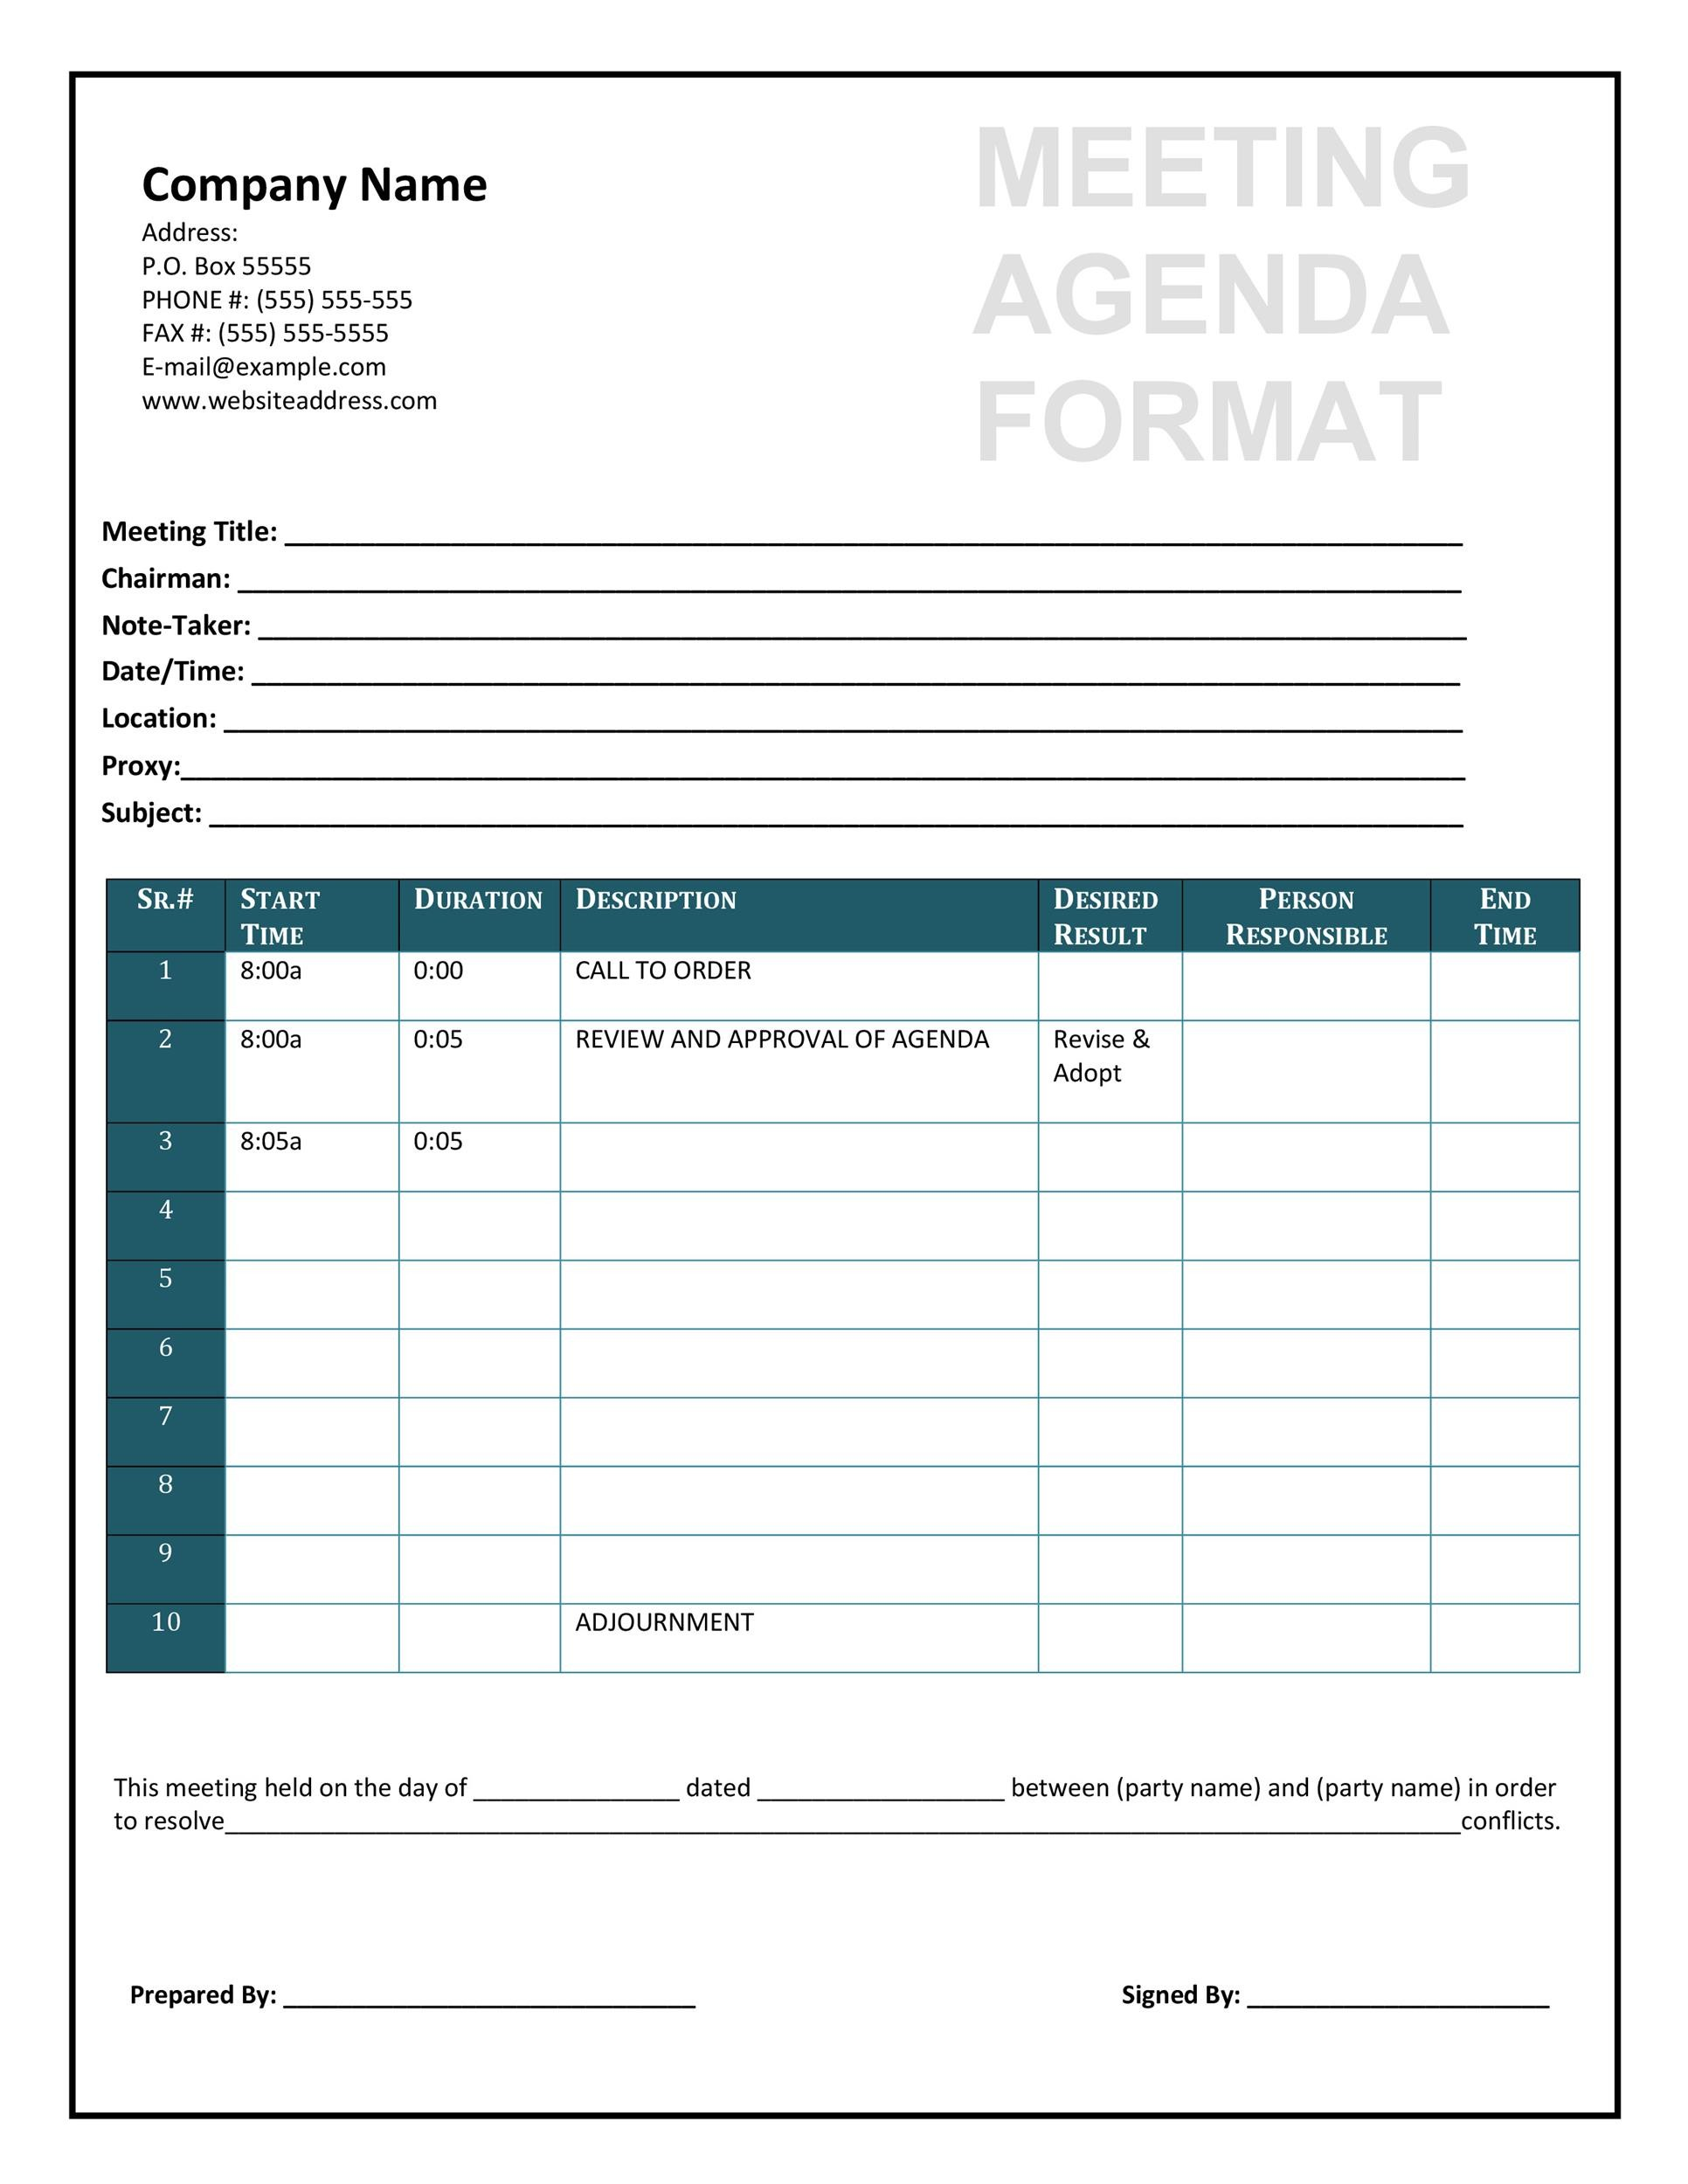 Printable Meeting Agenda Template 09  Free Meeting Agenda Template Microsoft Word